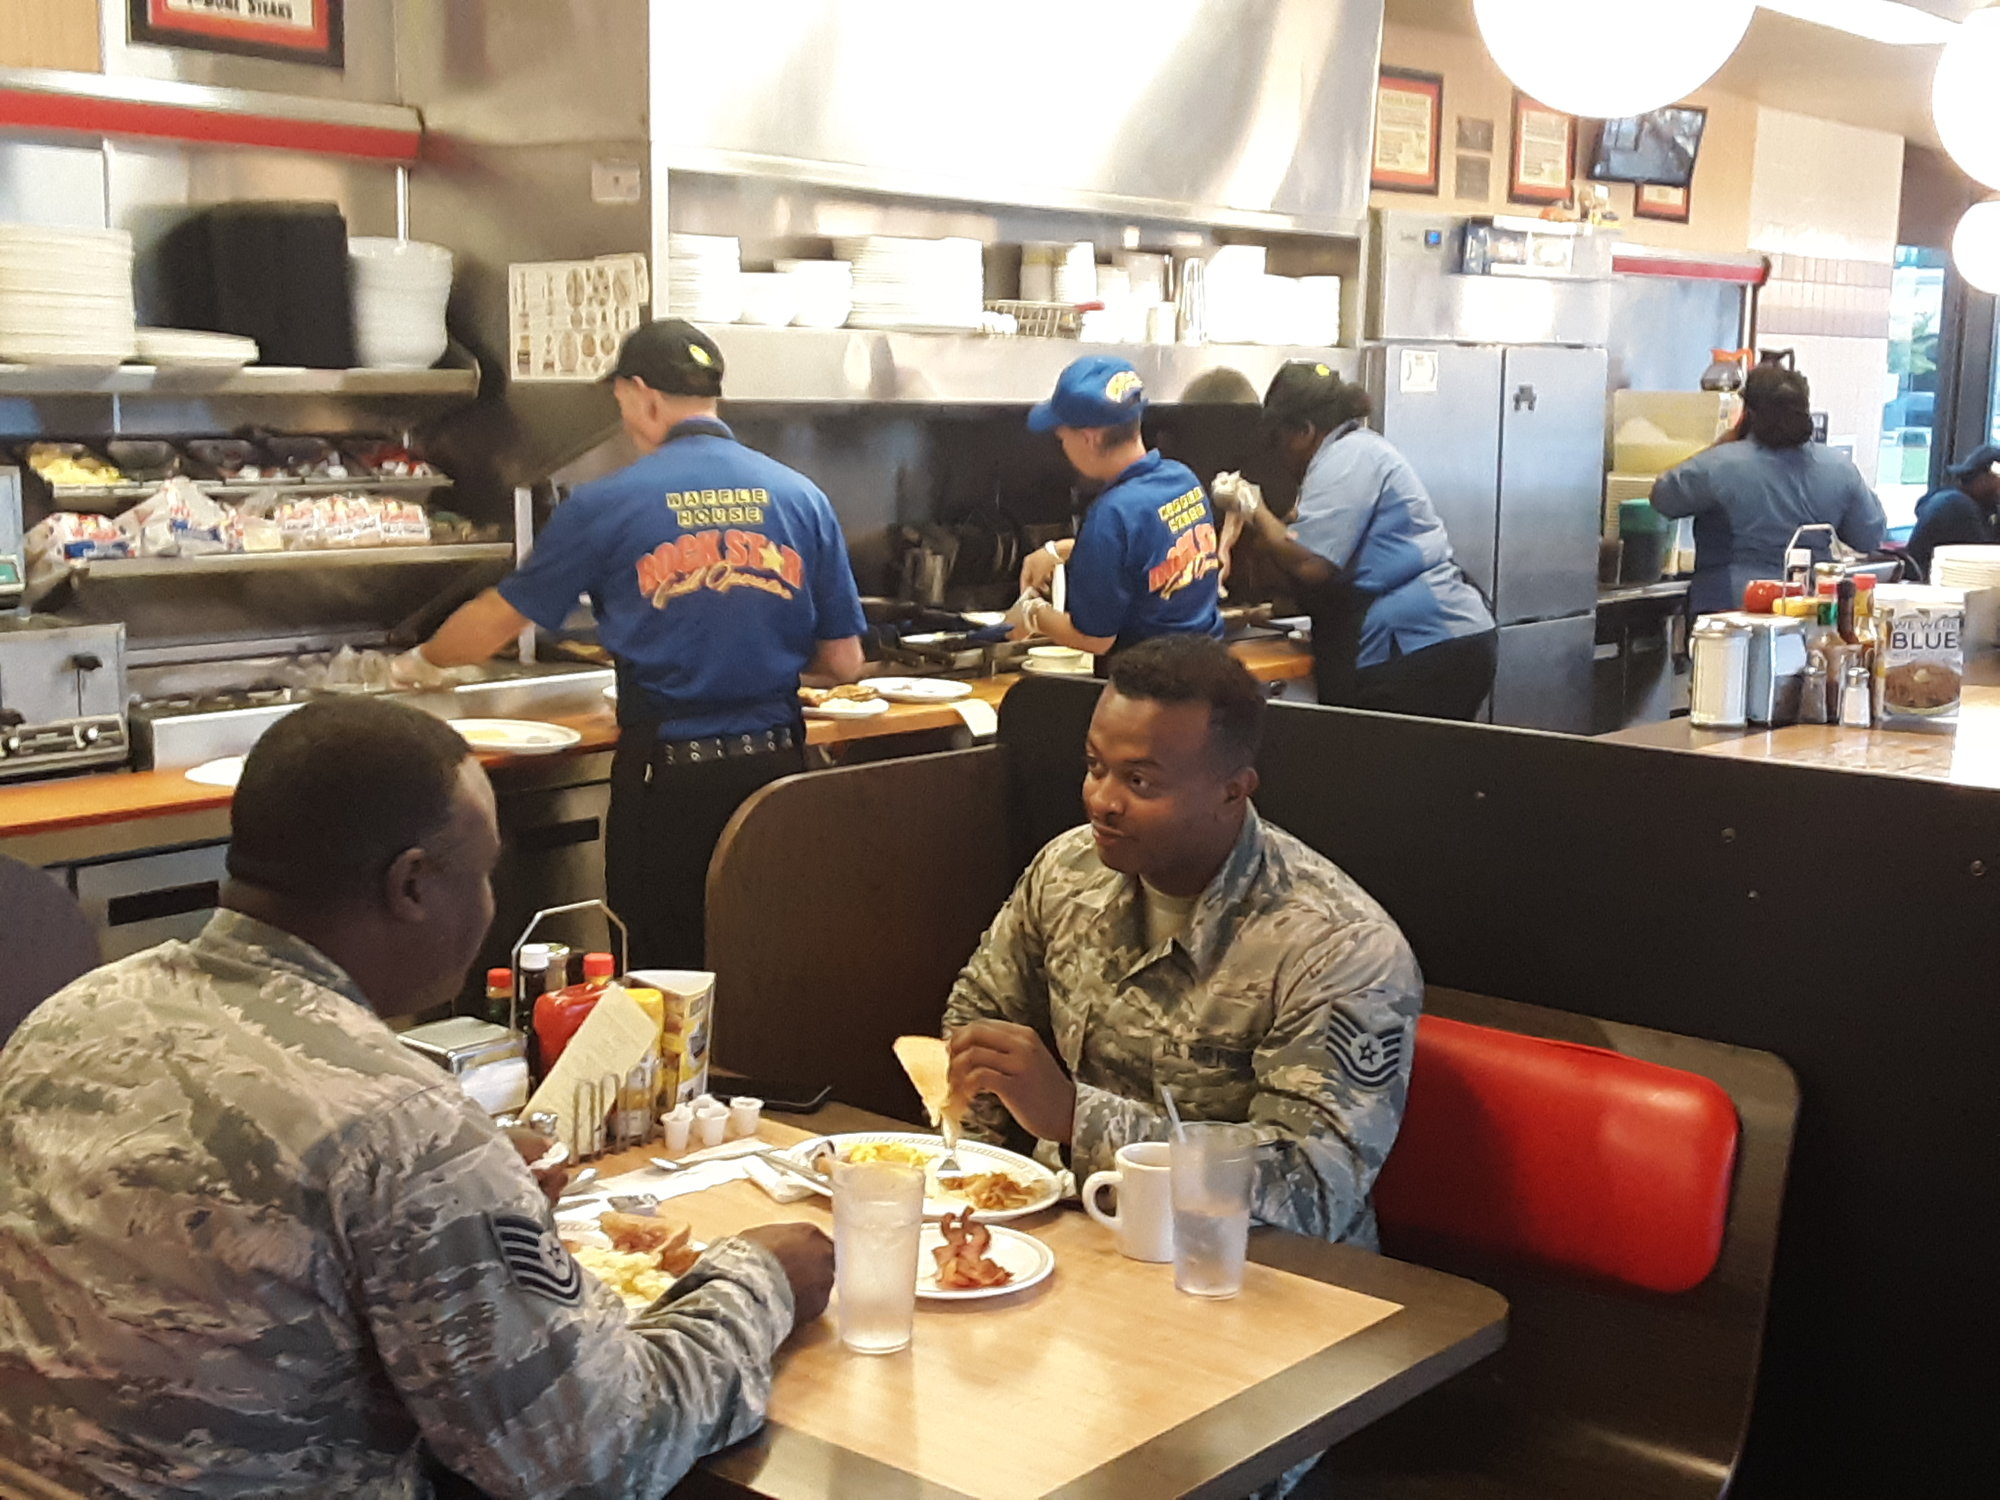 Military personnel eat breakfast on the morning of Thursday, Sept. 5, 2019, at Waffle House, 1350 Broad St., before going to work as Hurricane Dorian dumps mild rain and wind on Sumter.